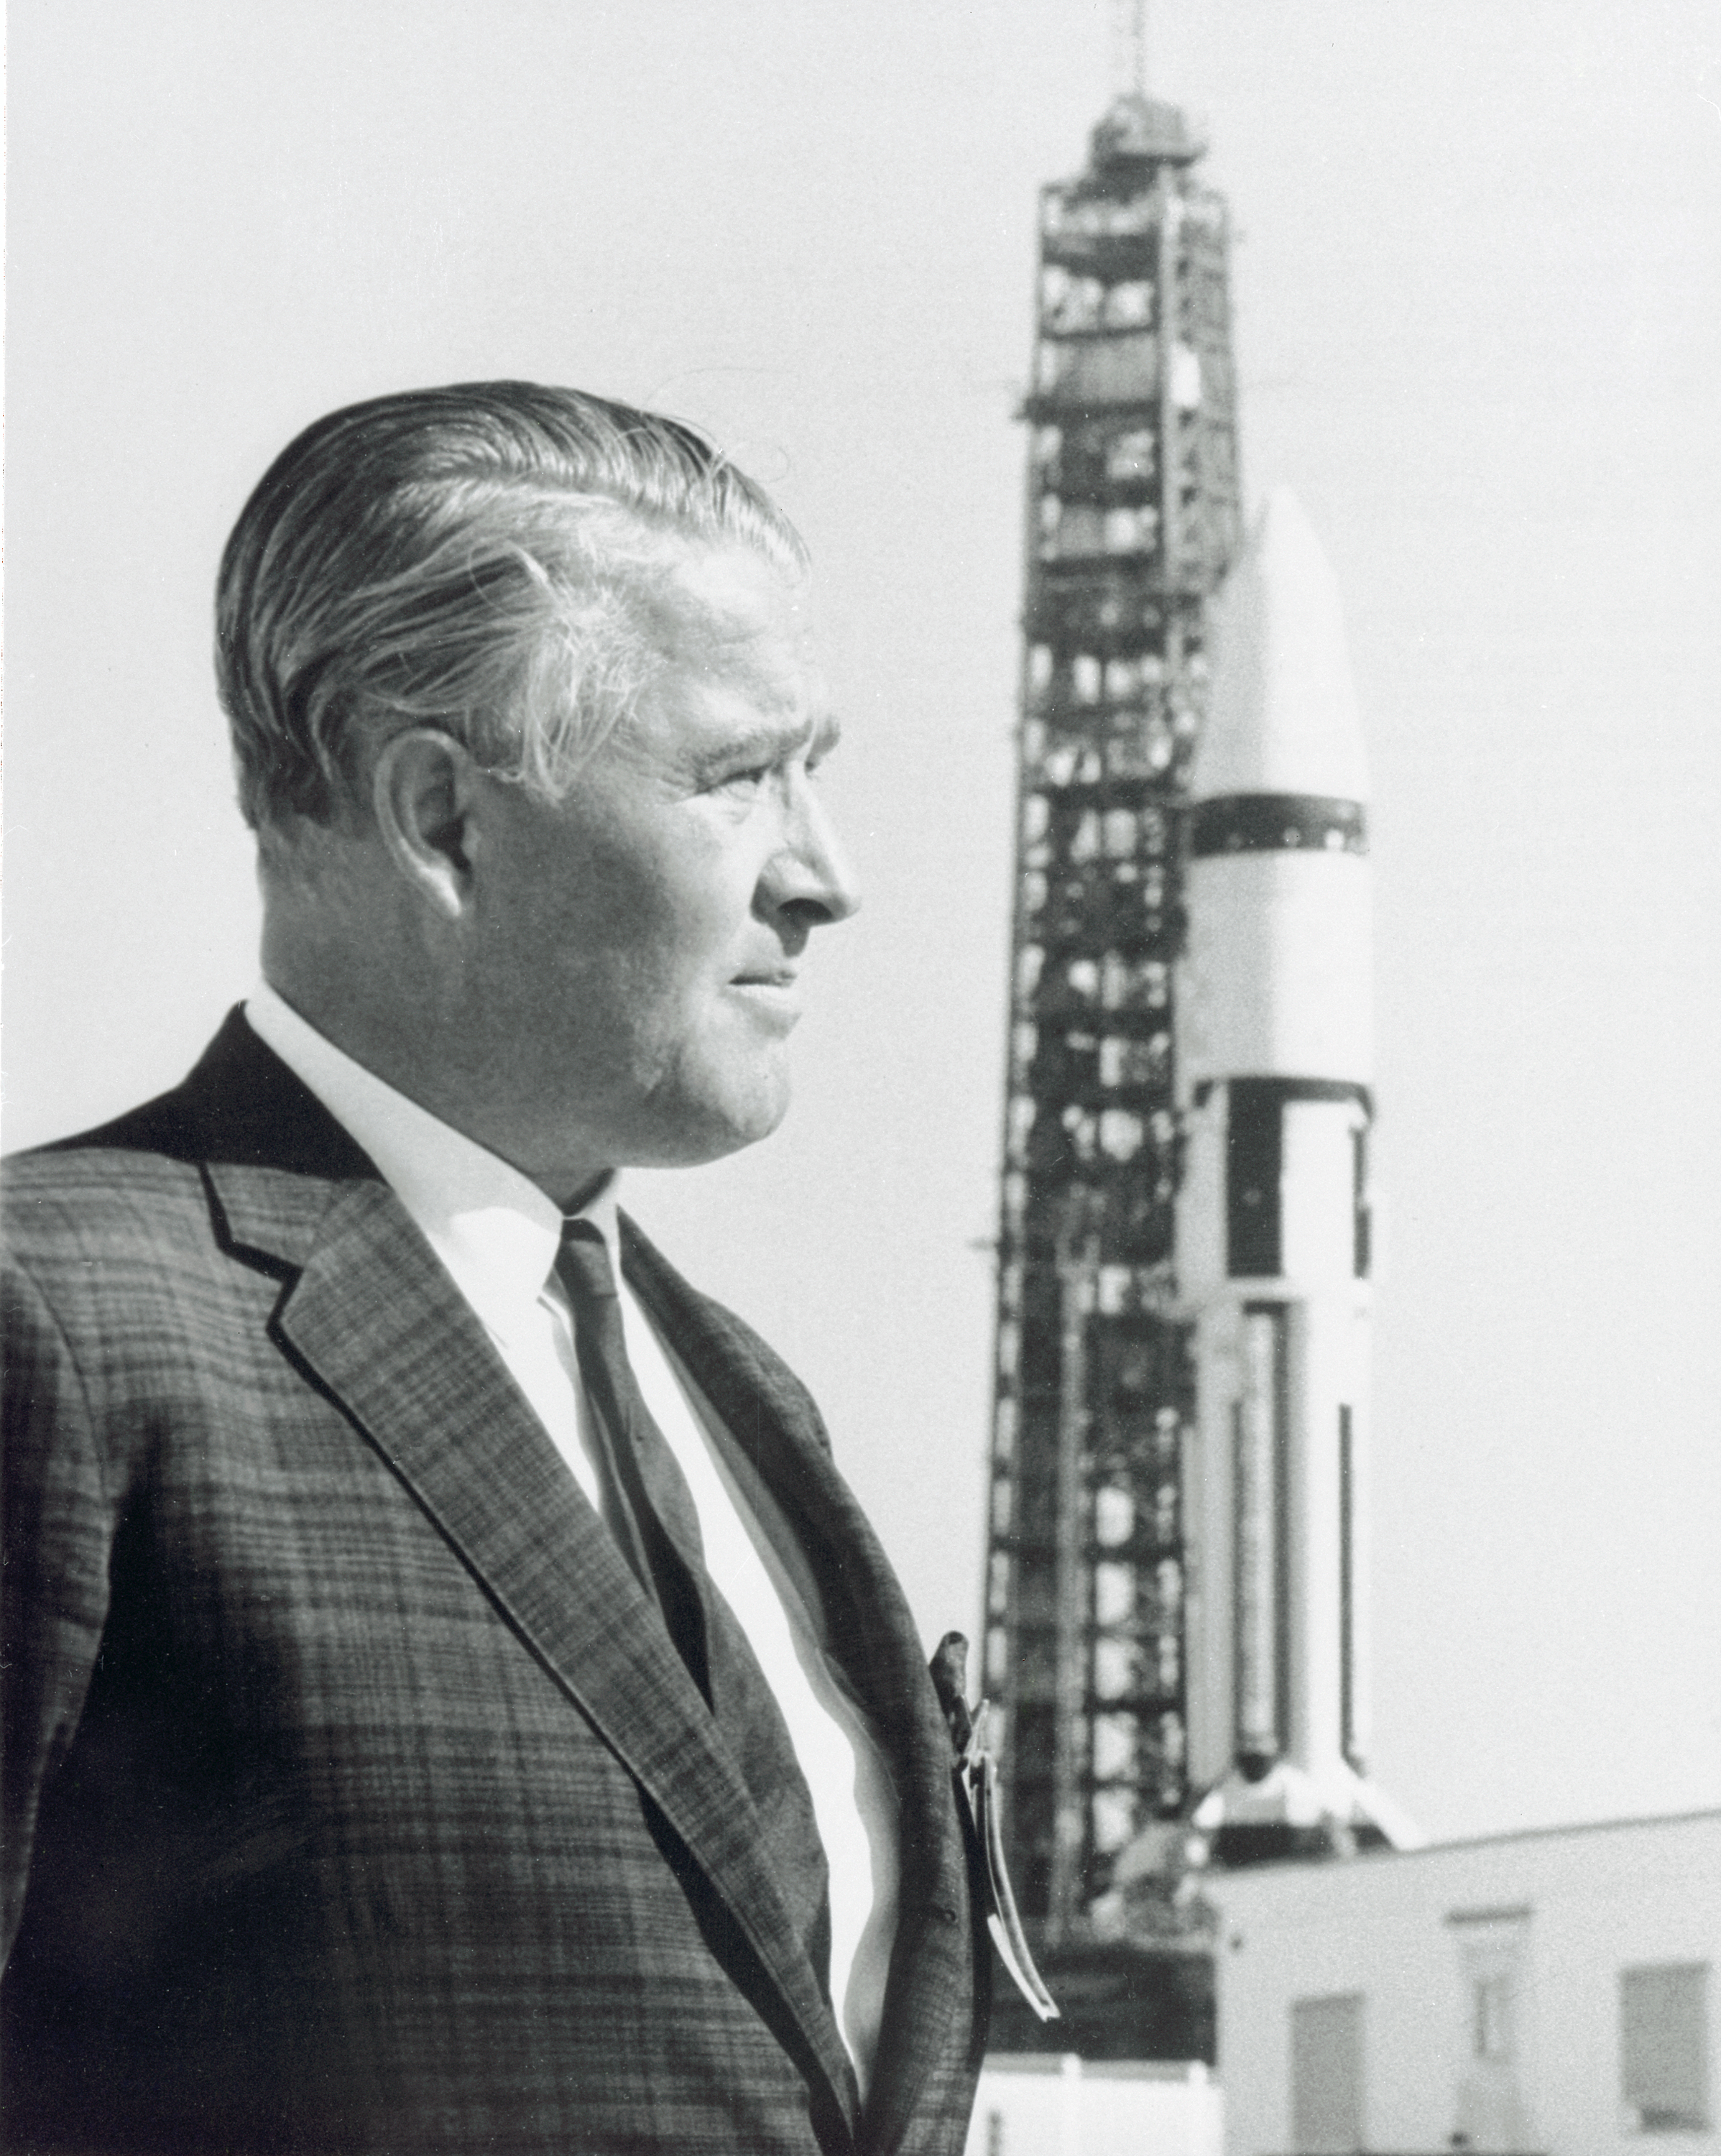 Saturn IB AS-204 (Apollo 5/LM-1) - 22-23.1.1968 Dr._Wernher_von_Braun_and_Saturn_IB